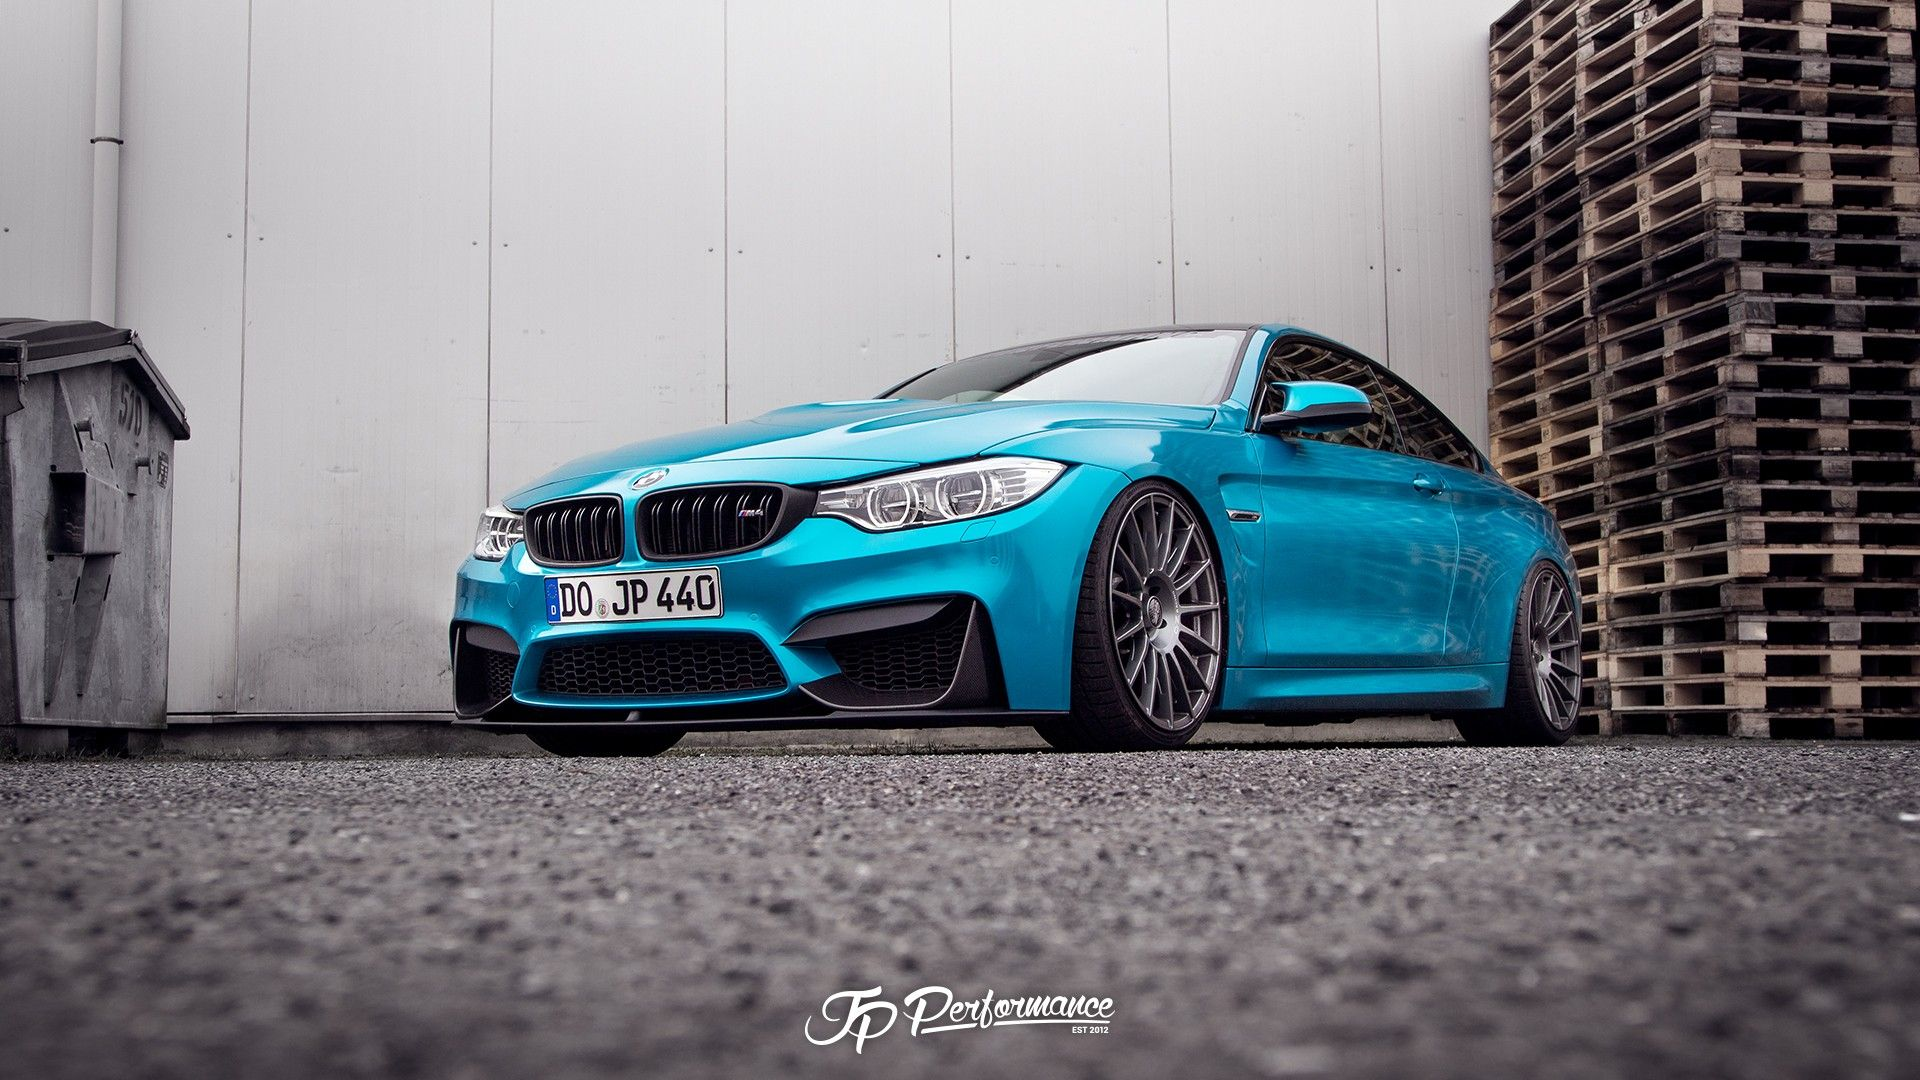 Bmw M4 F82 By Jp Performance Cars Pinterest Bmw Cars And